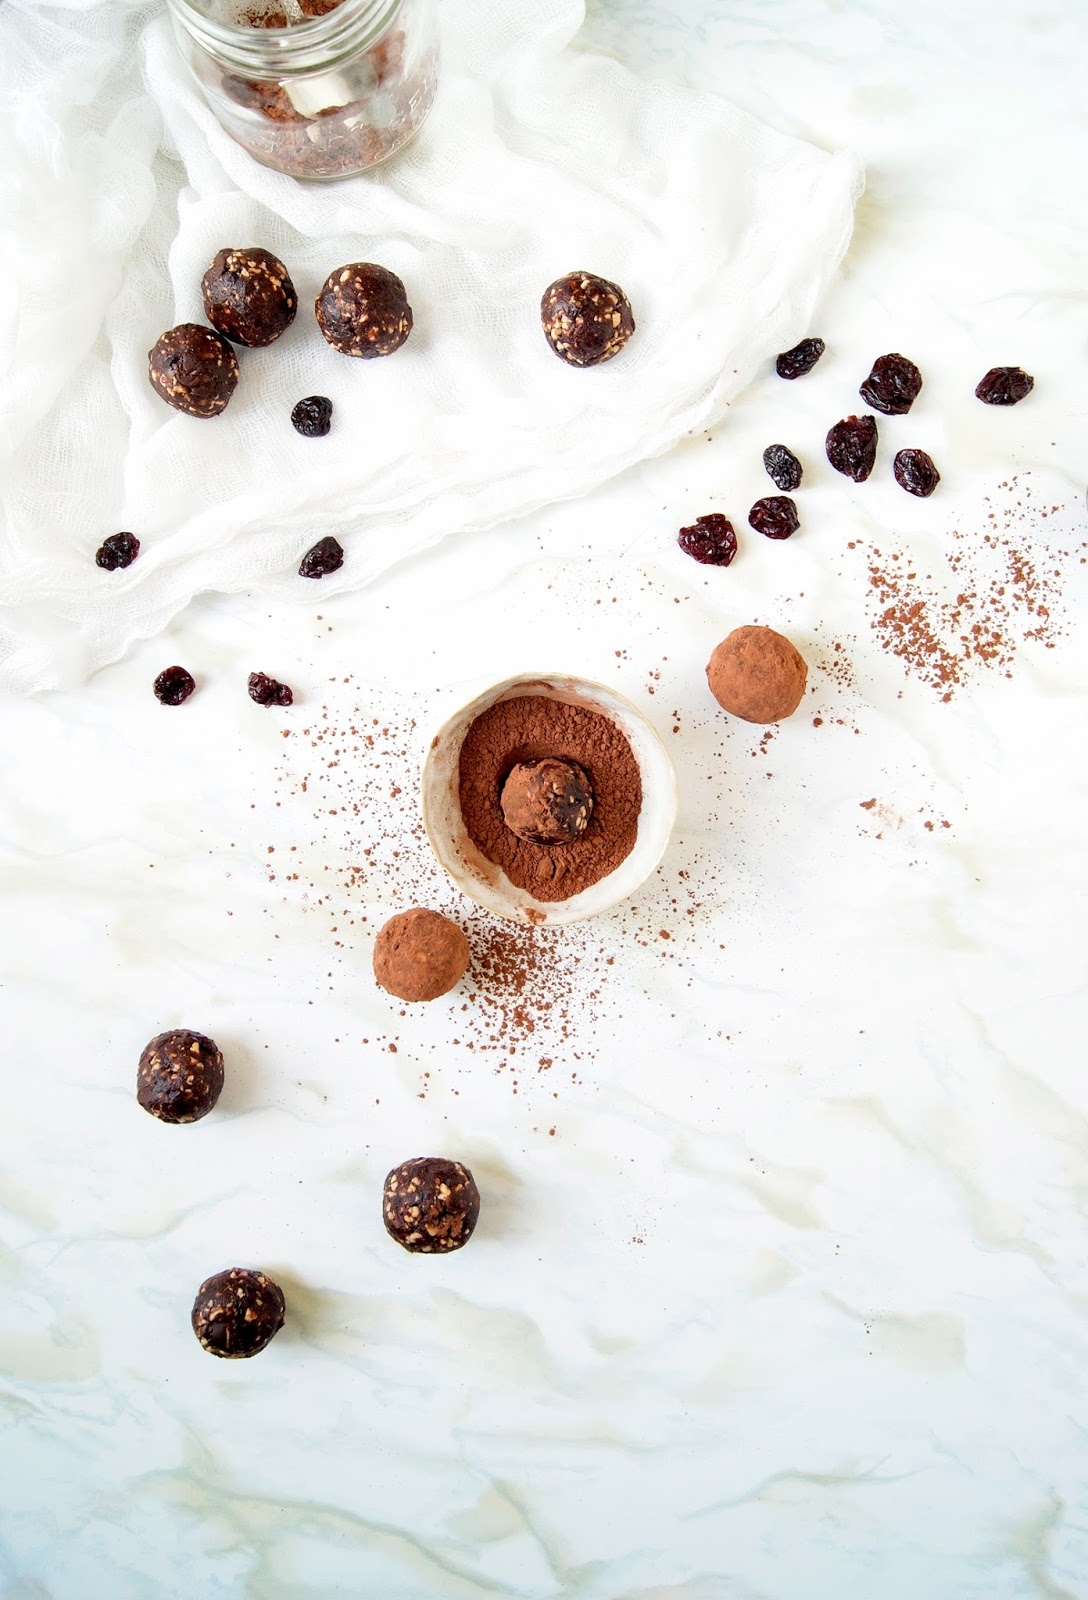 These raw & vegan chocolate cherry energy bites are made with dates, cacao, dried cherries, and cashews. They taste like the old school dessert but they're super healthy & perfect for quick snacks.